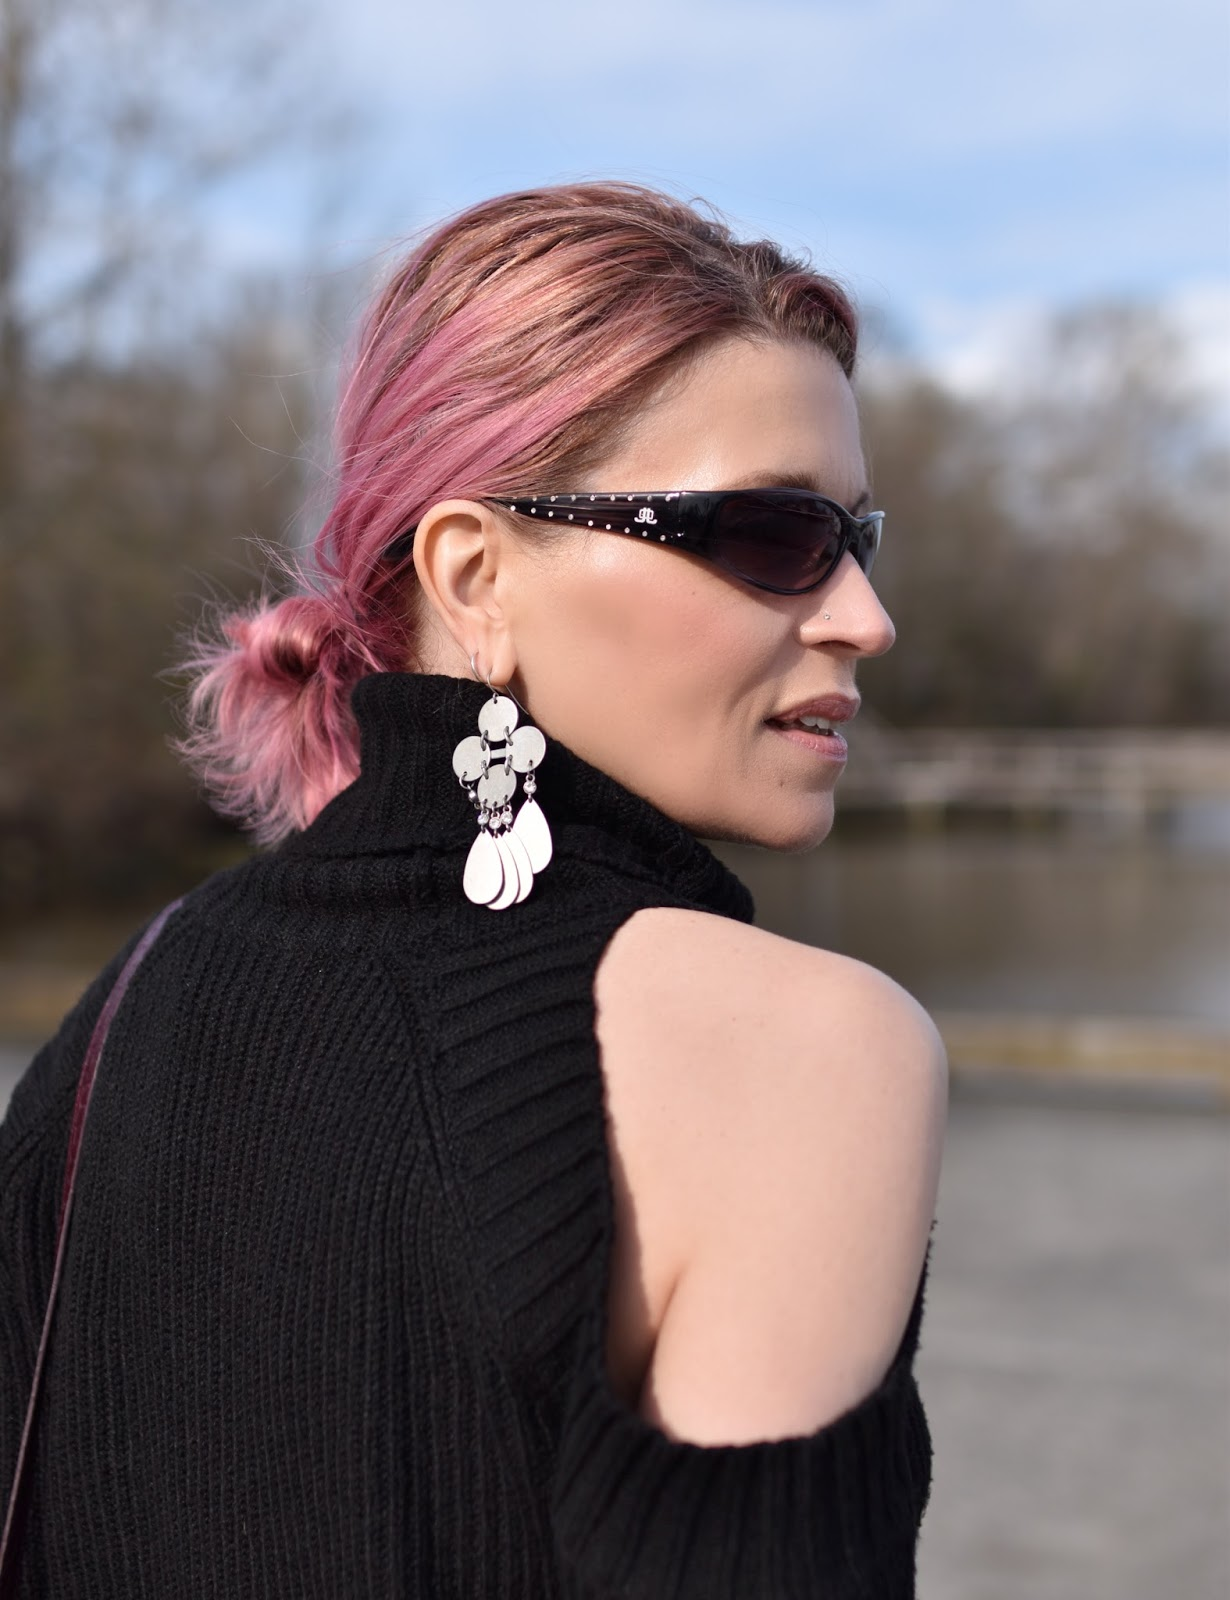 Monika Faulkner outfit inspiration - cold-shoulder sweater, chandelier earring, sunglasses, pink hair